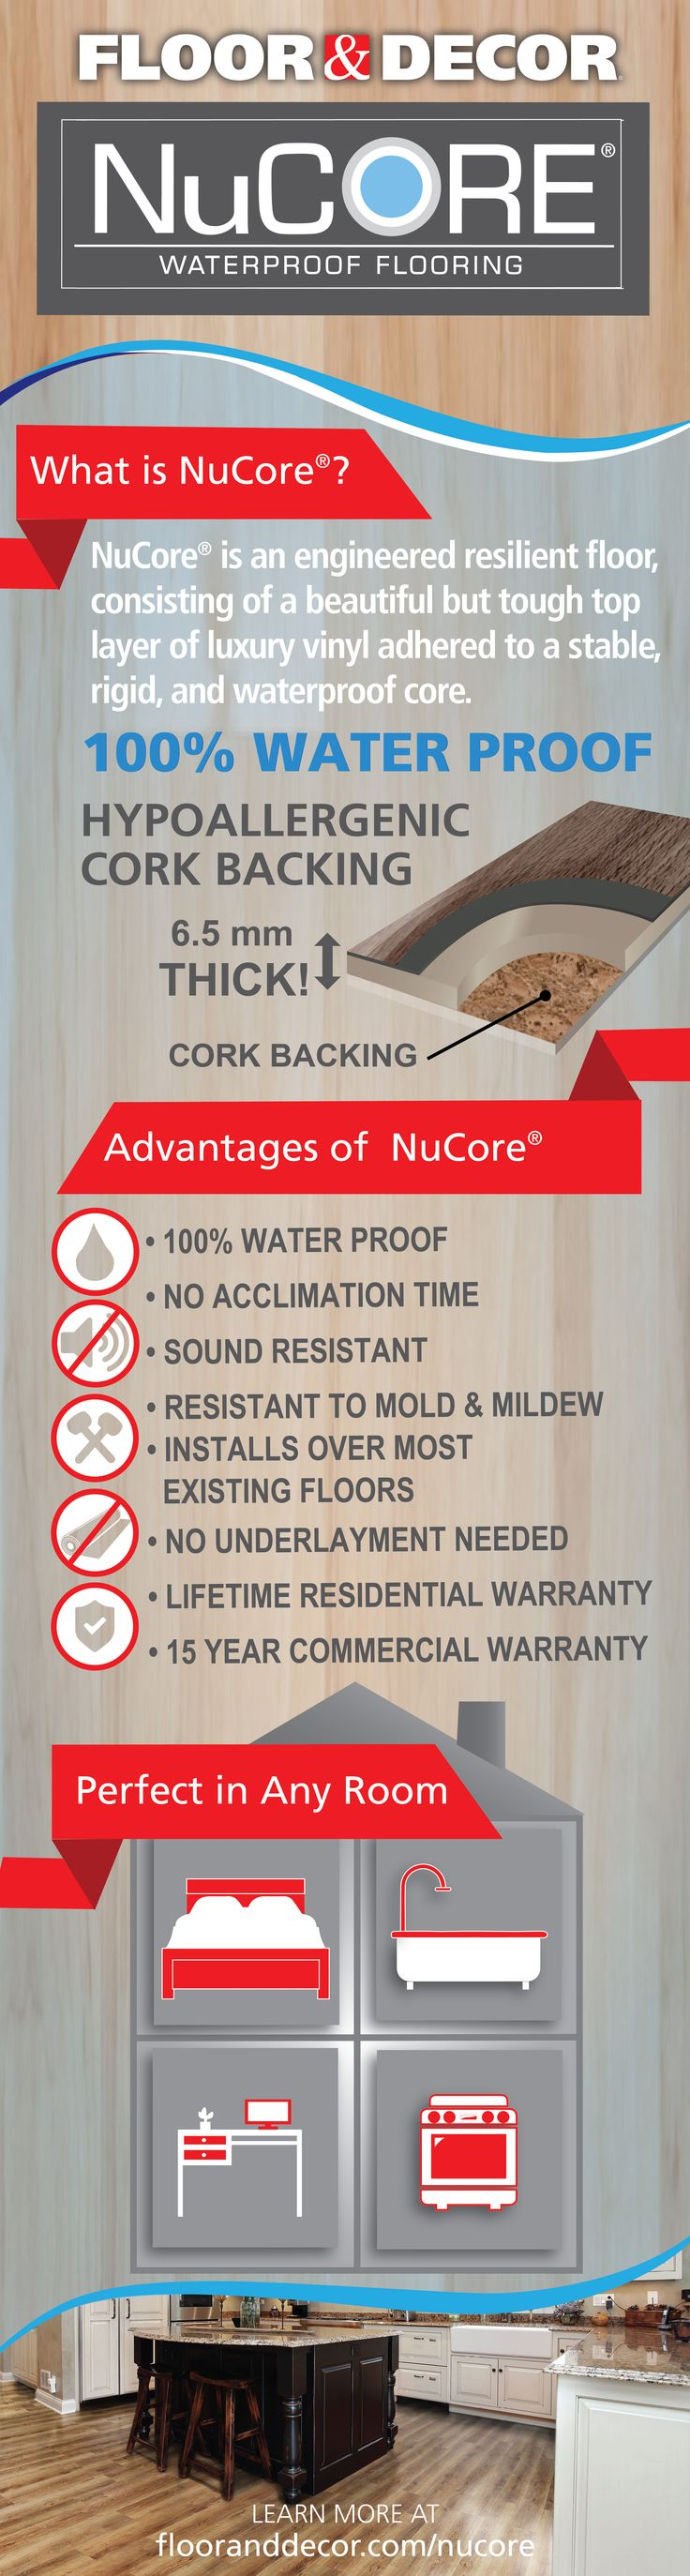 NuCore 100% waterproof flooring is a durable and practical option for any space. Having the look and feel of real hardwood, NuCore installs over most existing floors, with little to no prep. Plus, there's no acclimation waiting time so you can start installing NuCore today!